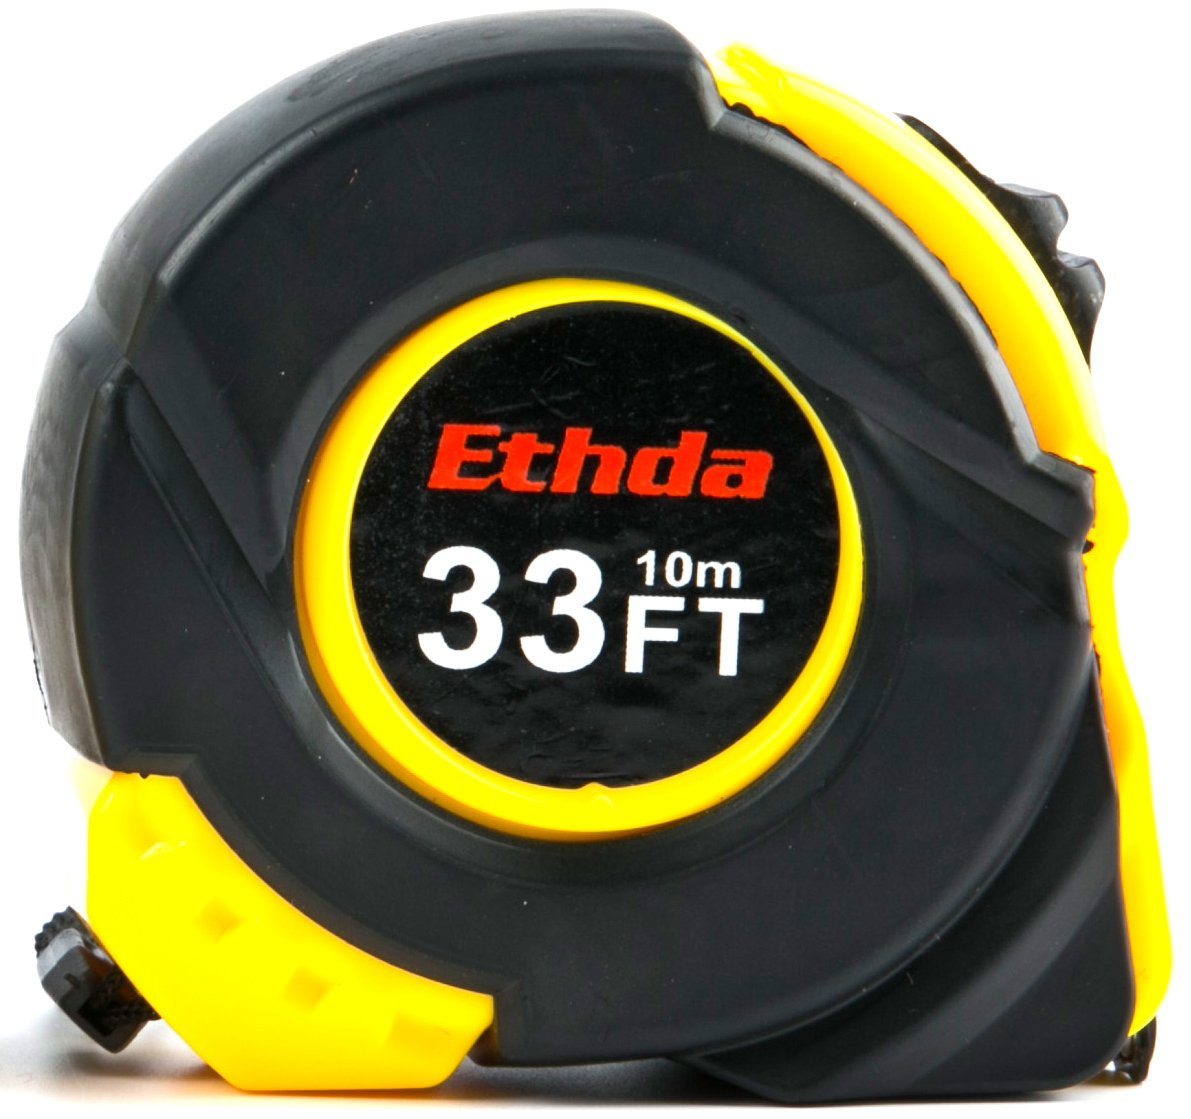 ETHDA Measuring Tape, Easy to Read Ruler,Retractable,Heavy Duty,Magnetic Hook,Sturdy Blade,Power Lock,Clip and Strap,Imperial Inch Metric Scales,Shock Absorbent Solid Rubber Case,Yellow 33 Foot (10m)